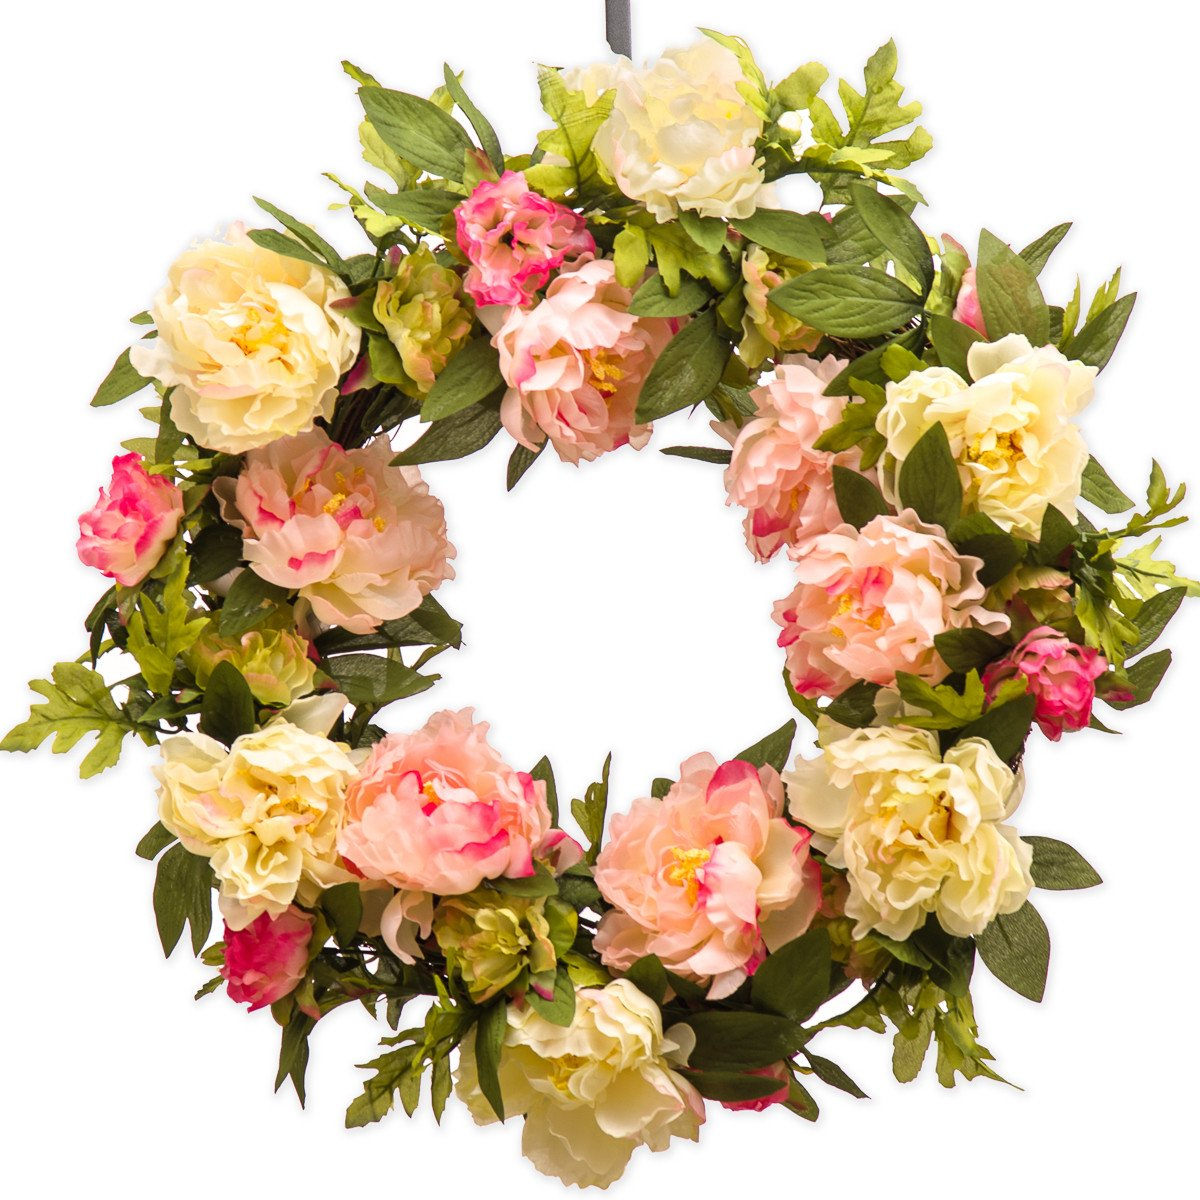 PINK CREAM PEONY WREATH (SW955) - Spring Wreath - Summer Wreath - Everyday Wreath